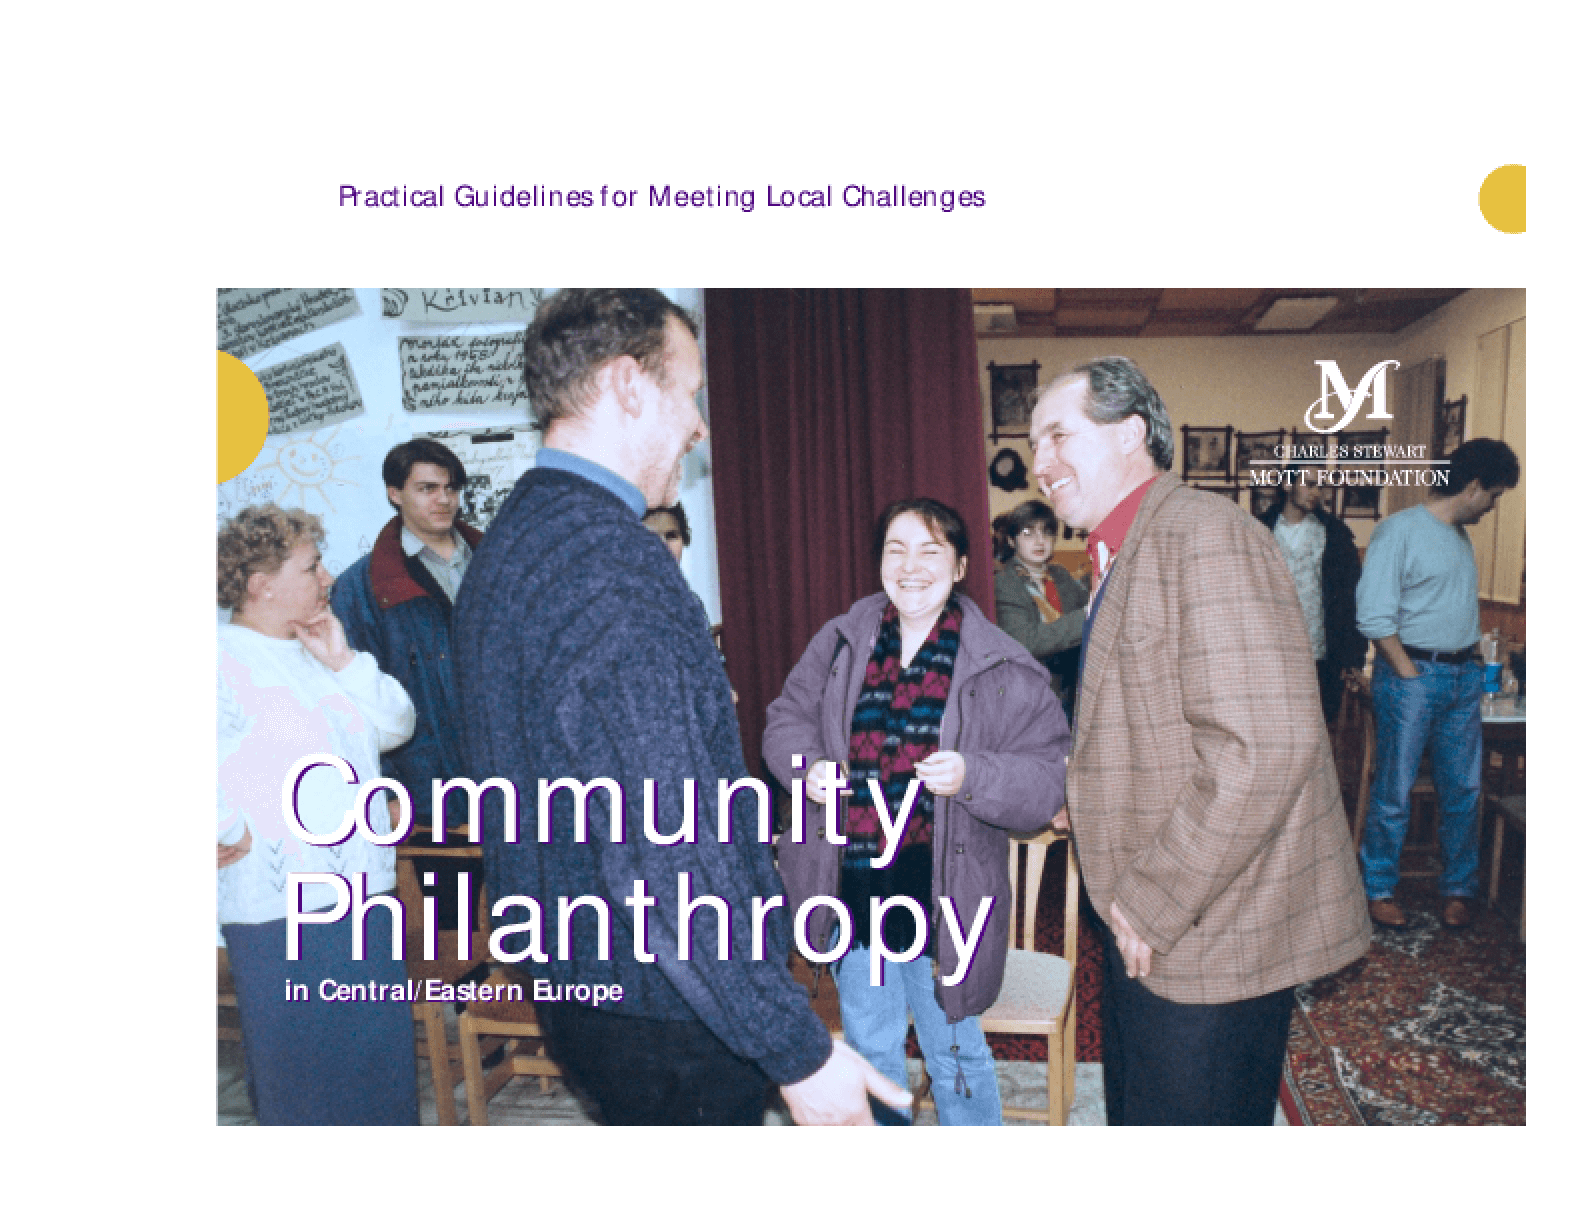 Community Philanthropy in Central/Eastern Europe